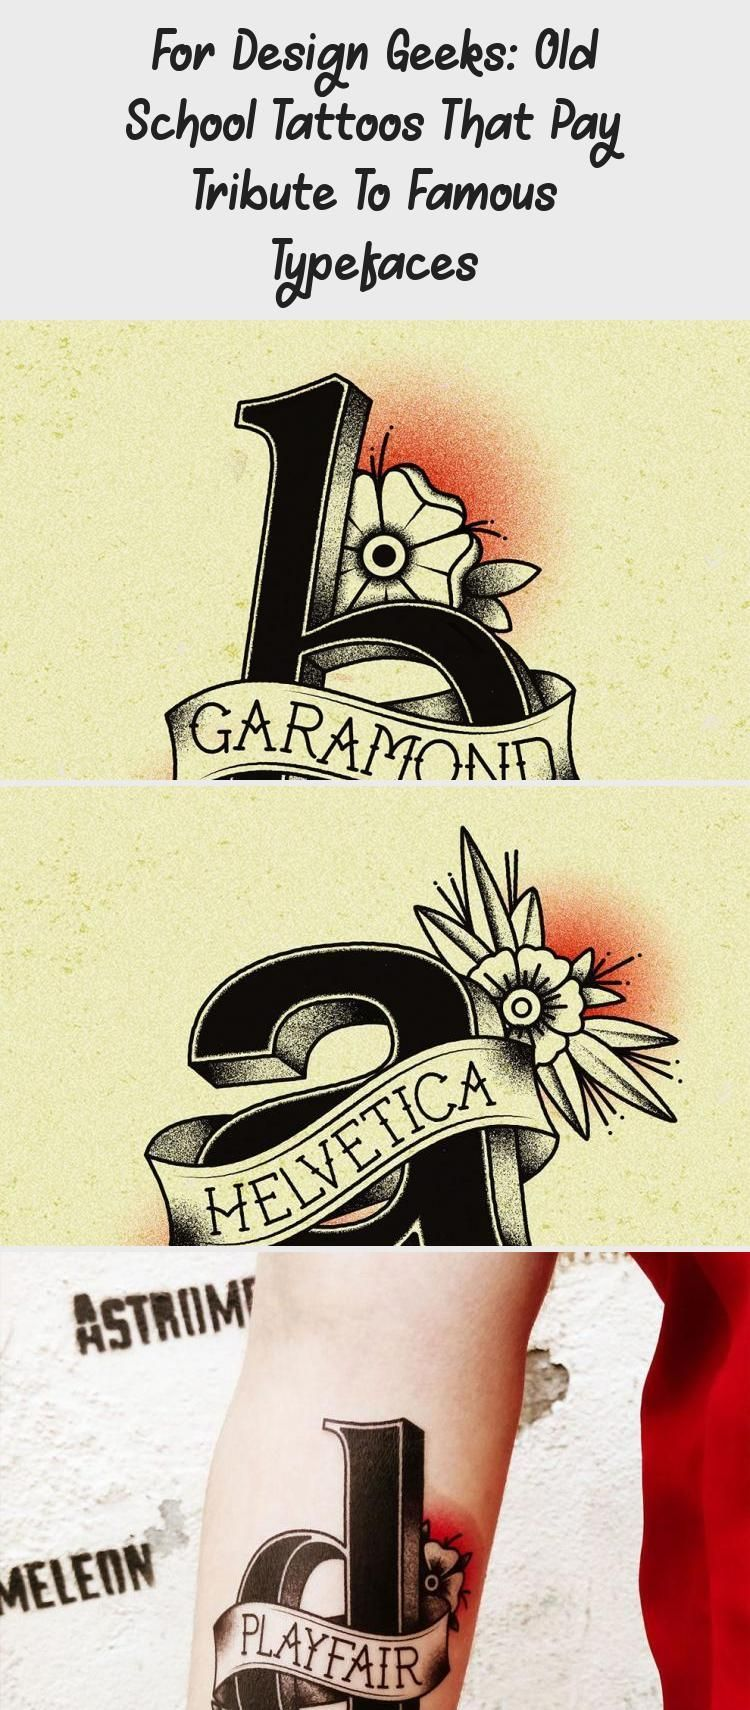 , For Design Geeks: Old School Tattoos That Pay Tribute To Famous Typefaces #oldsc… –  For Design Geeks: Old School Tattoos That Pay Tribute To Famous…, My Tattoo Blog 2020, My Tattoo Blog 2020